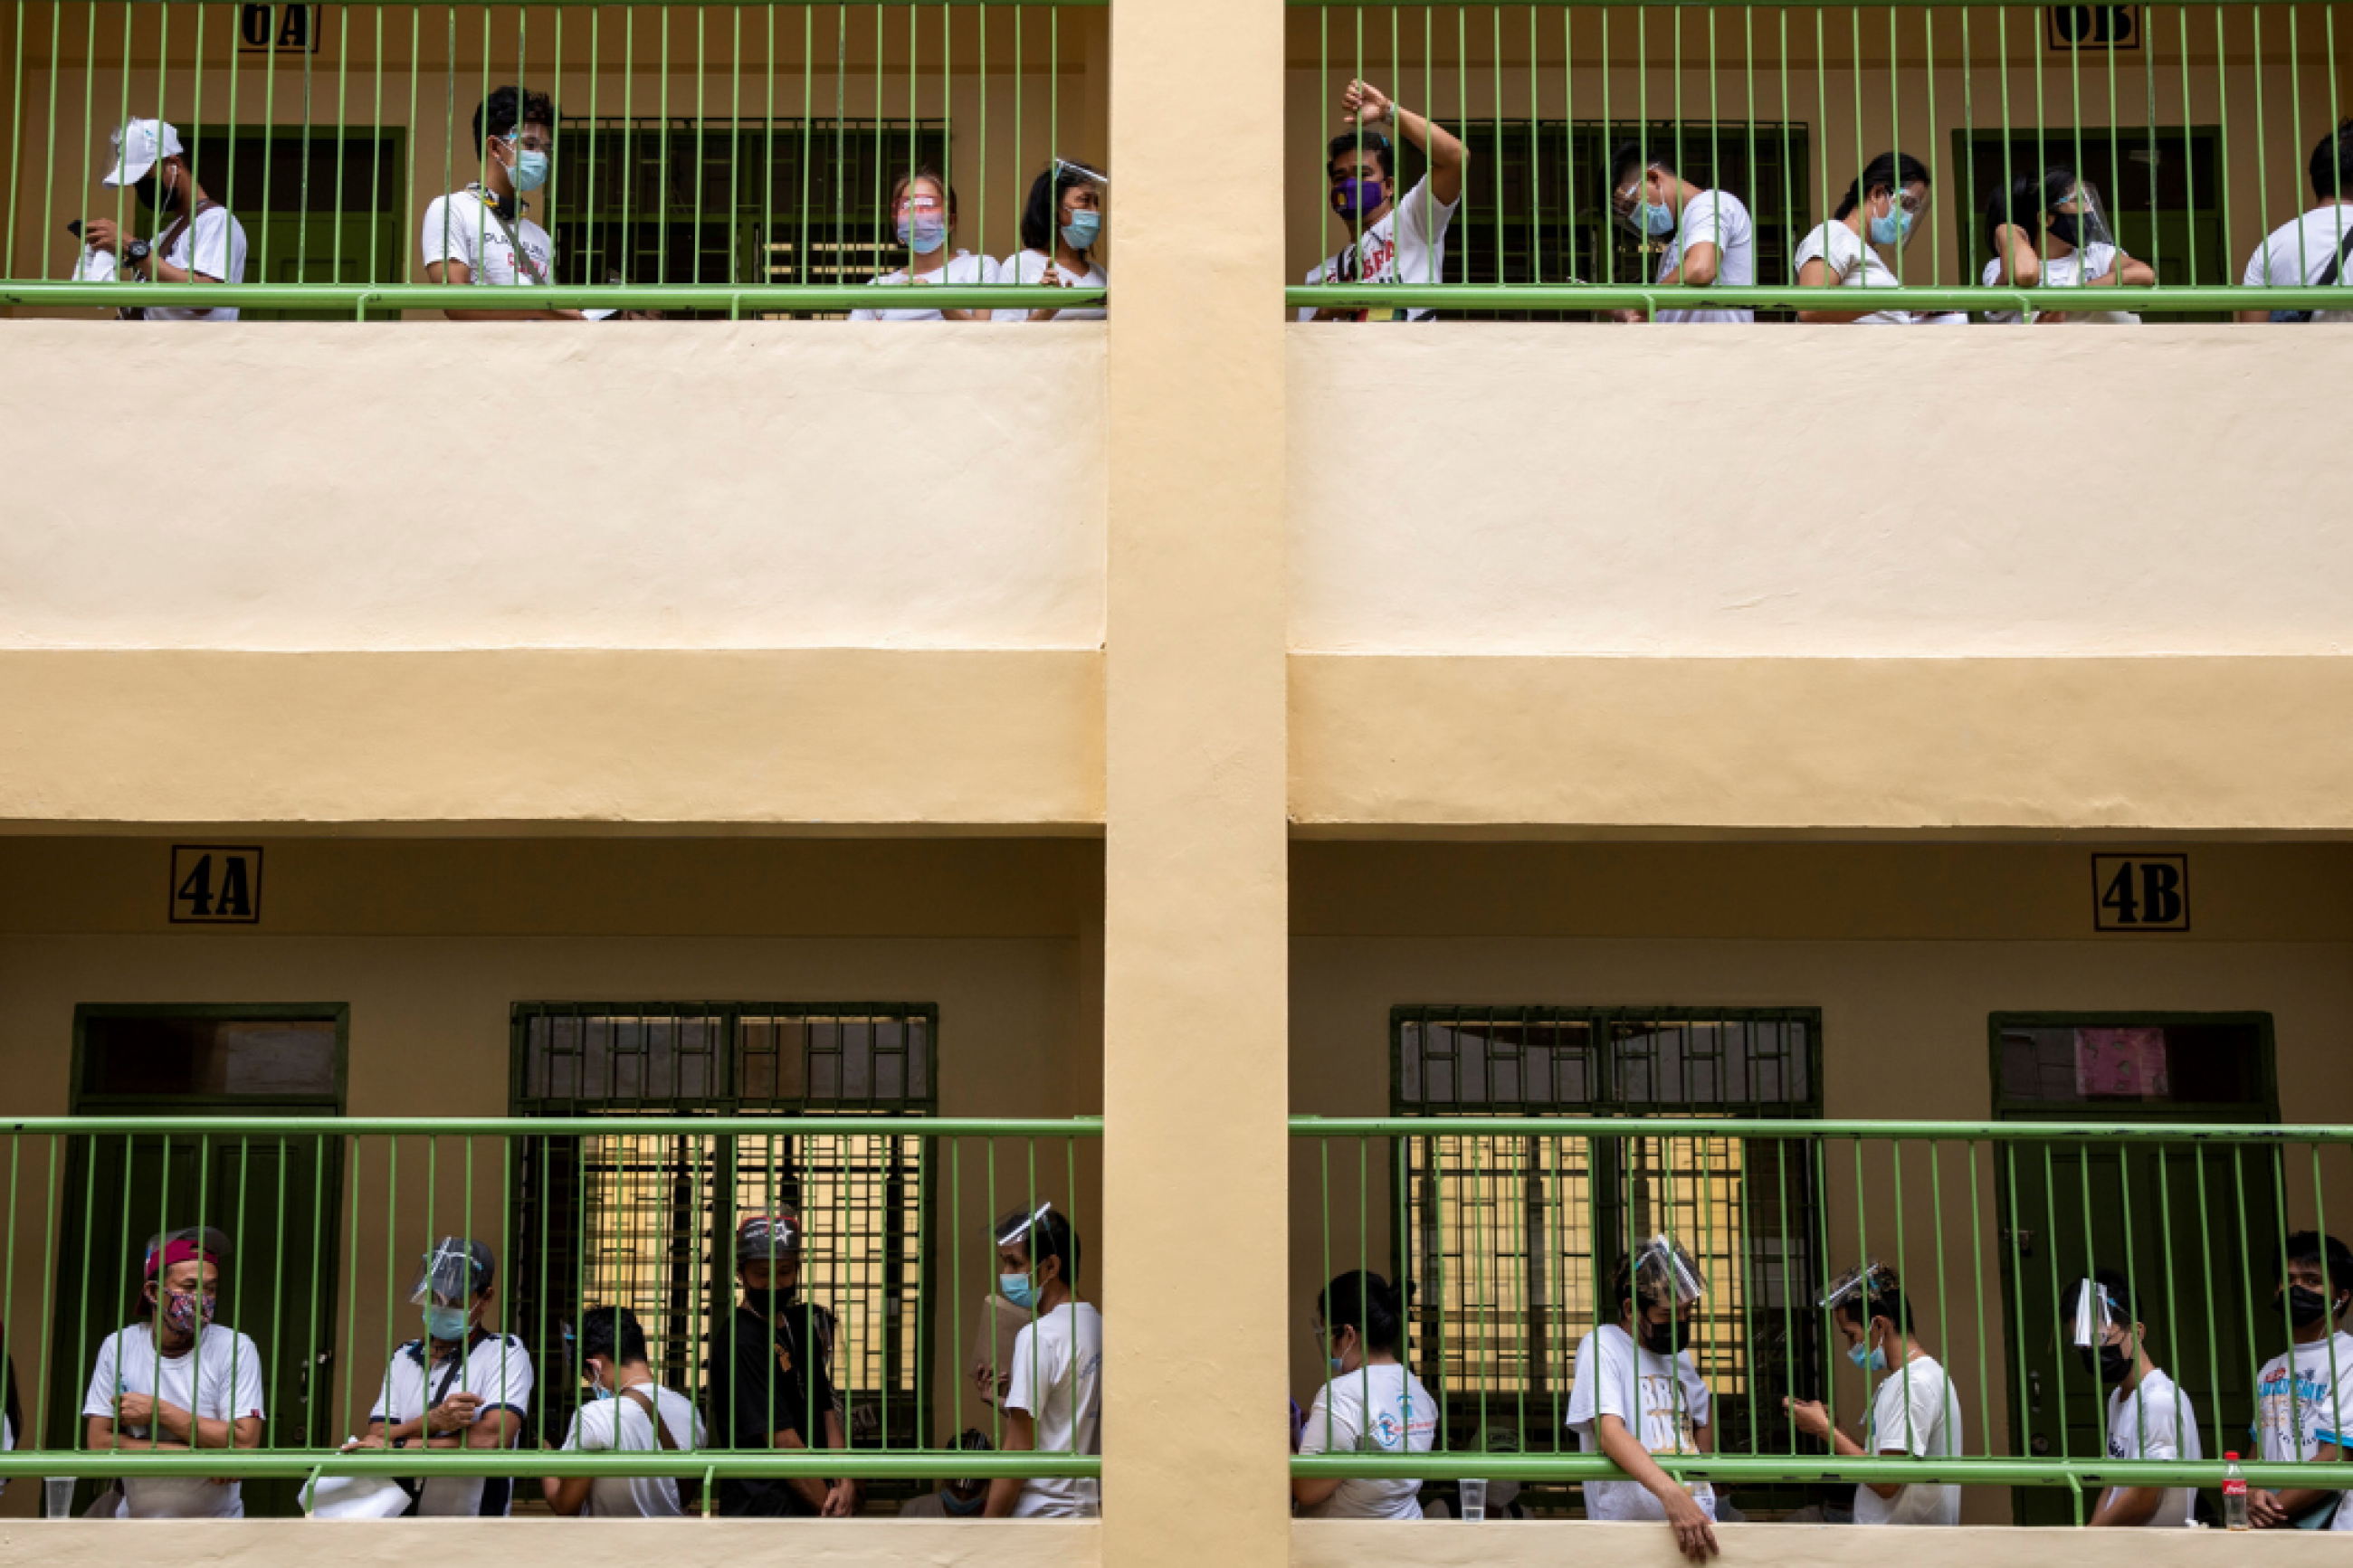 People whose jobs were affected by COVID-19 restrictions wait in lines to receive cash assistance from the government, at an elementary school in Quezon City, Metro Manila, Philippines, April 12, 2021.